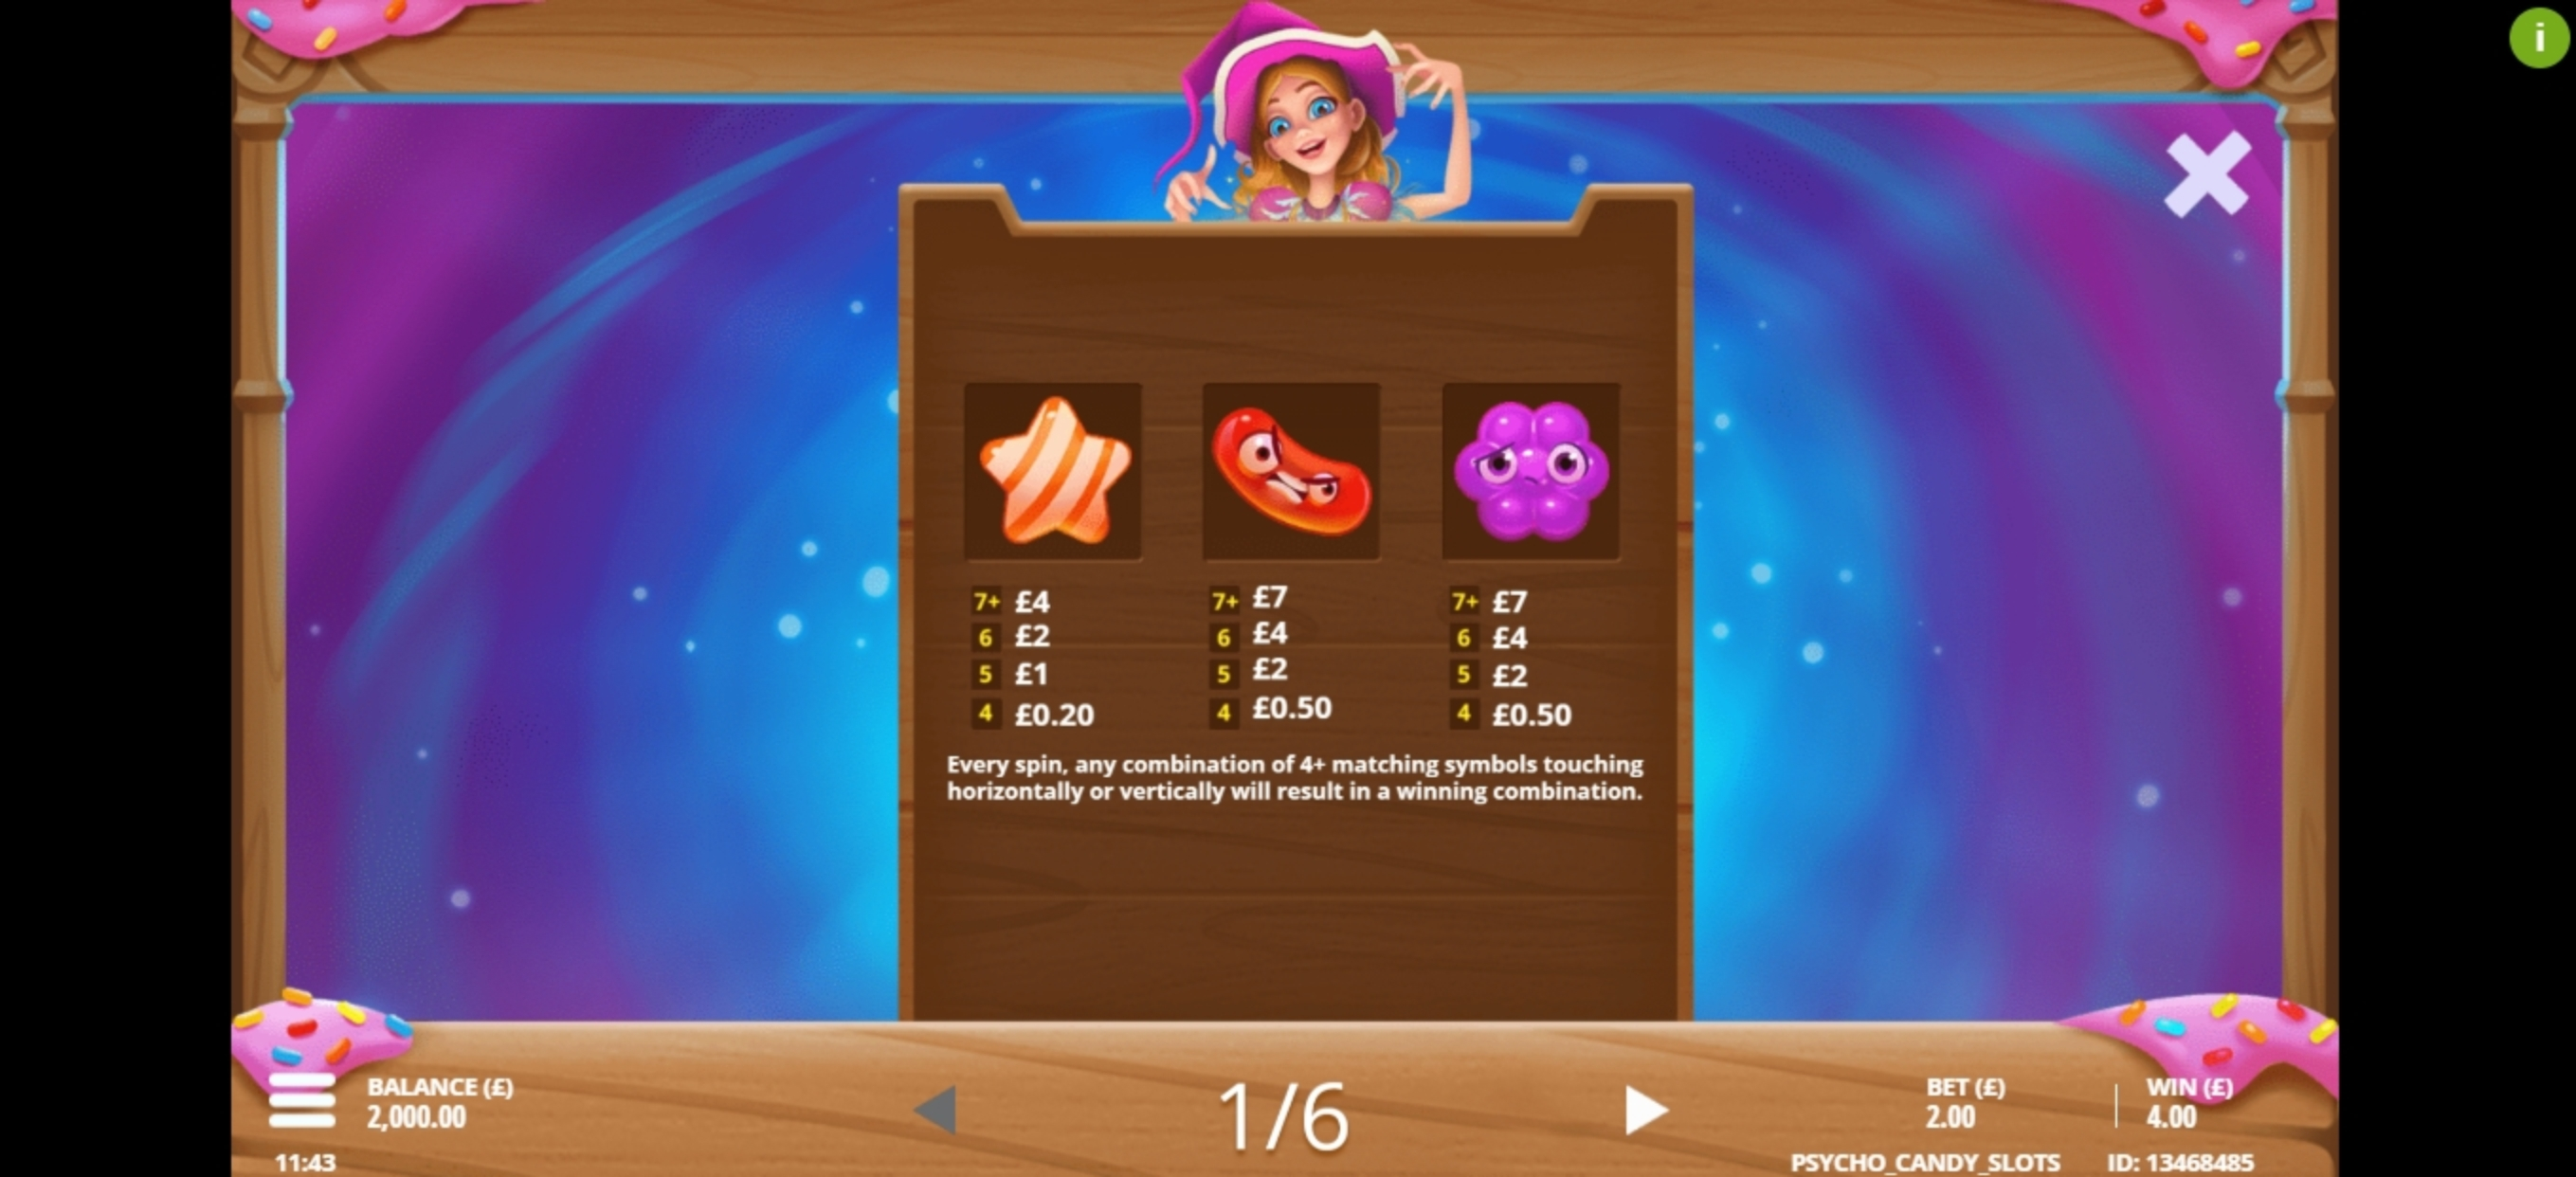 Info of Psycho Candies Slot Game by Gluck Games